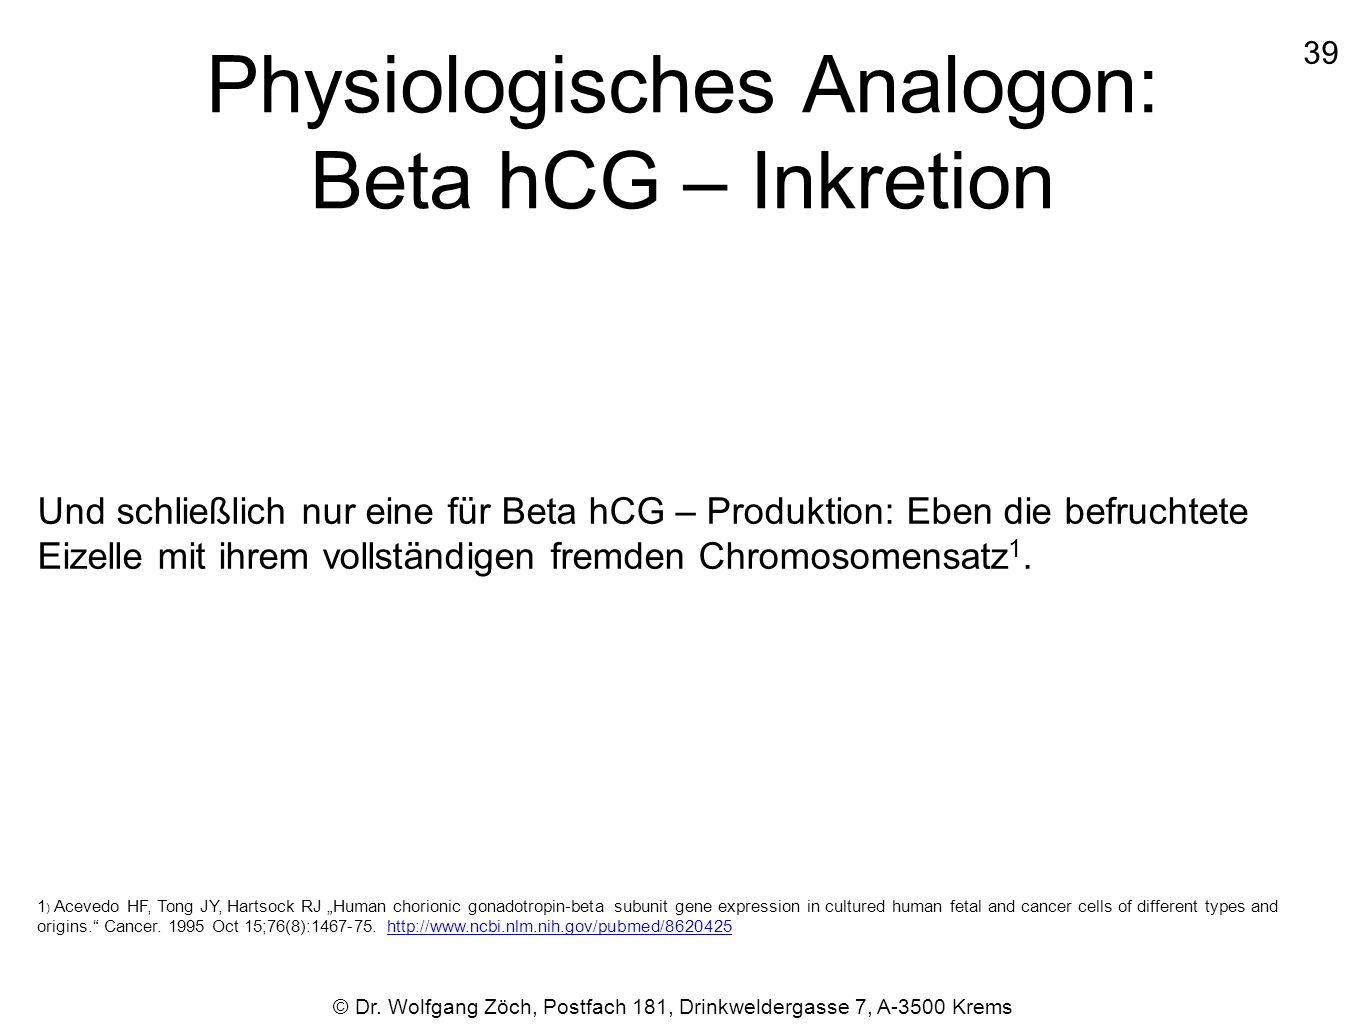 Physiologisches Analogon: Beta hCG – Inkretion